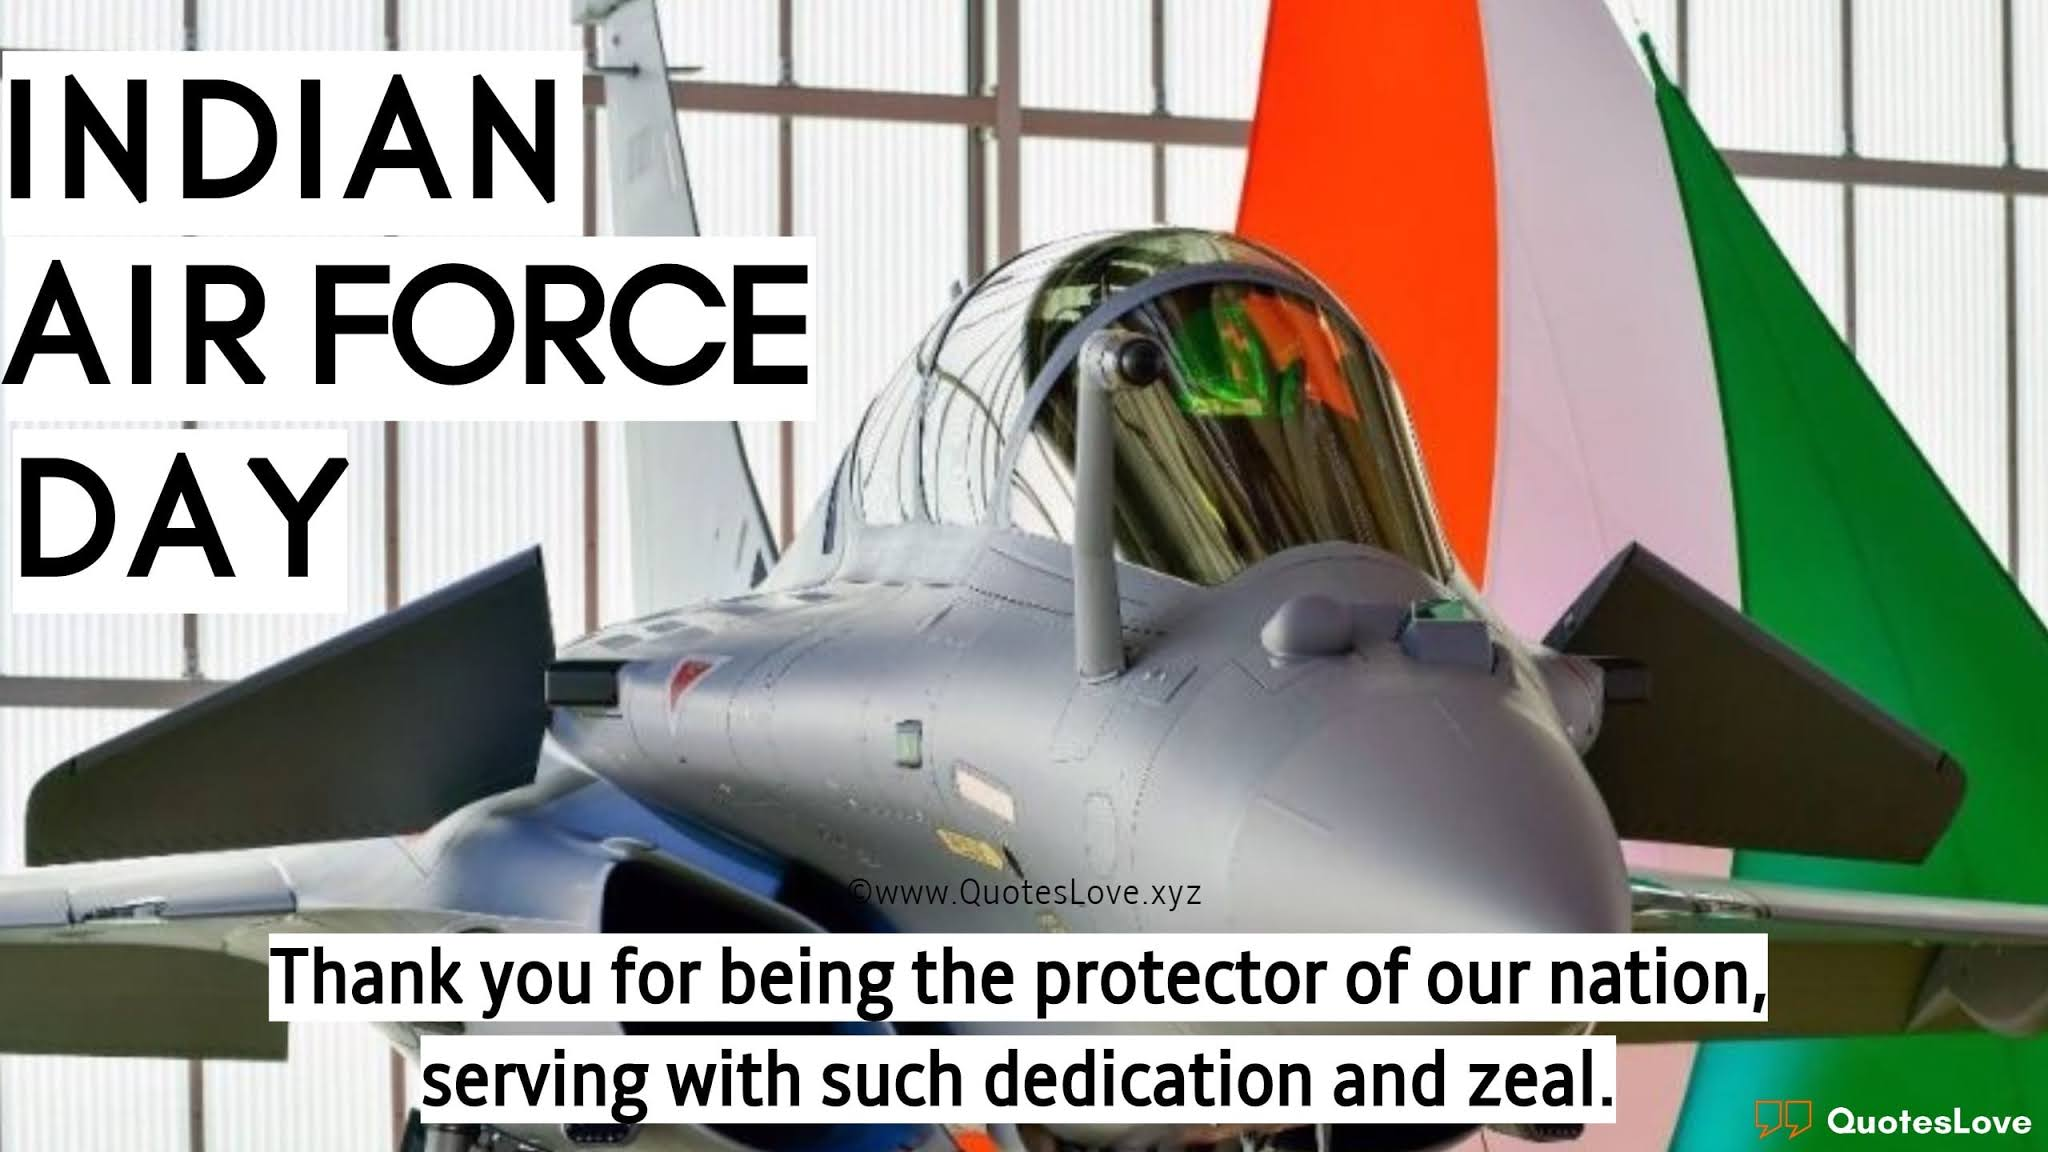 Indian Air Force Day Quotes, Sayings, Slogans, Wishes, Greetings, Messages, Images, Pictures, Photos